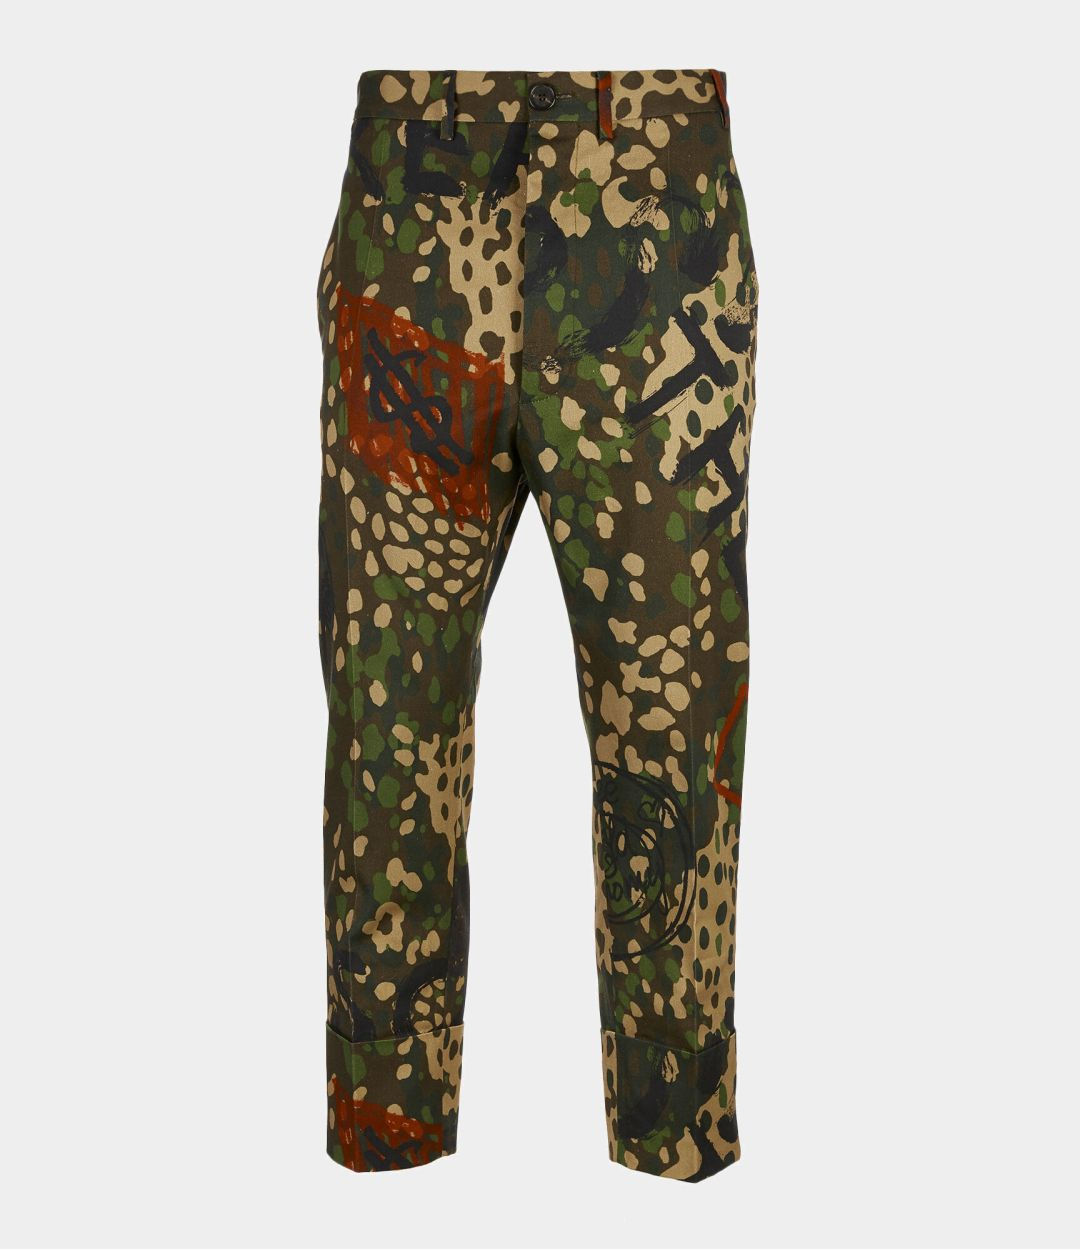 bea83b5fde906 Vivienne Westwood Cropped James Bond Trousers Camouflage Print 370